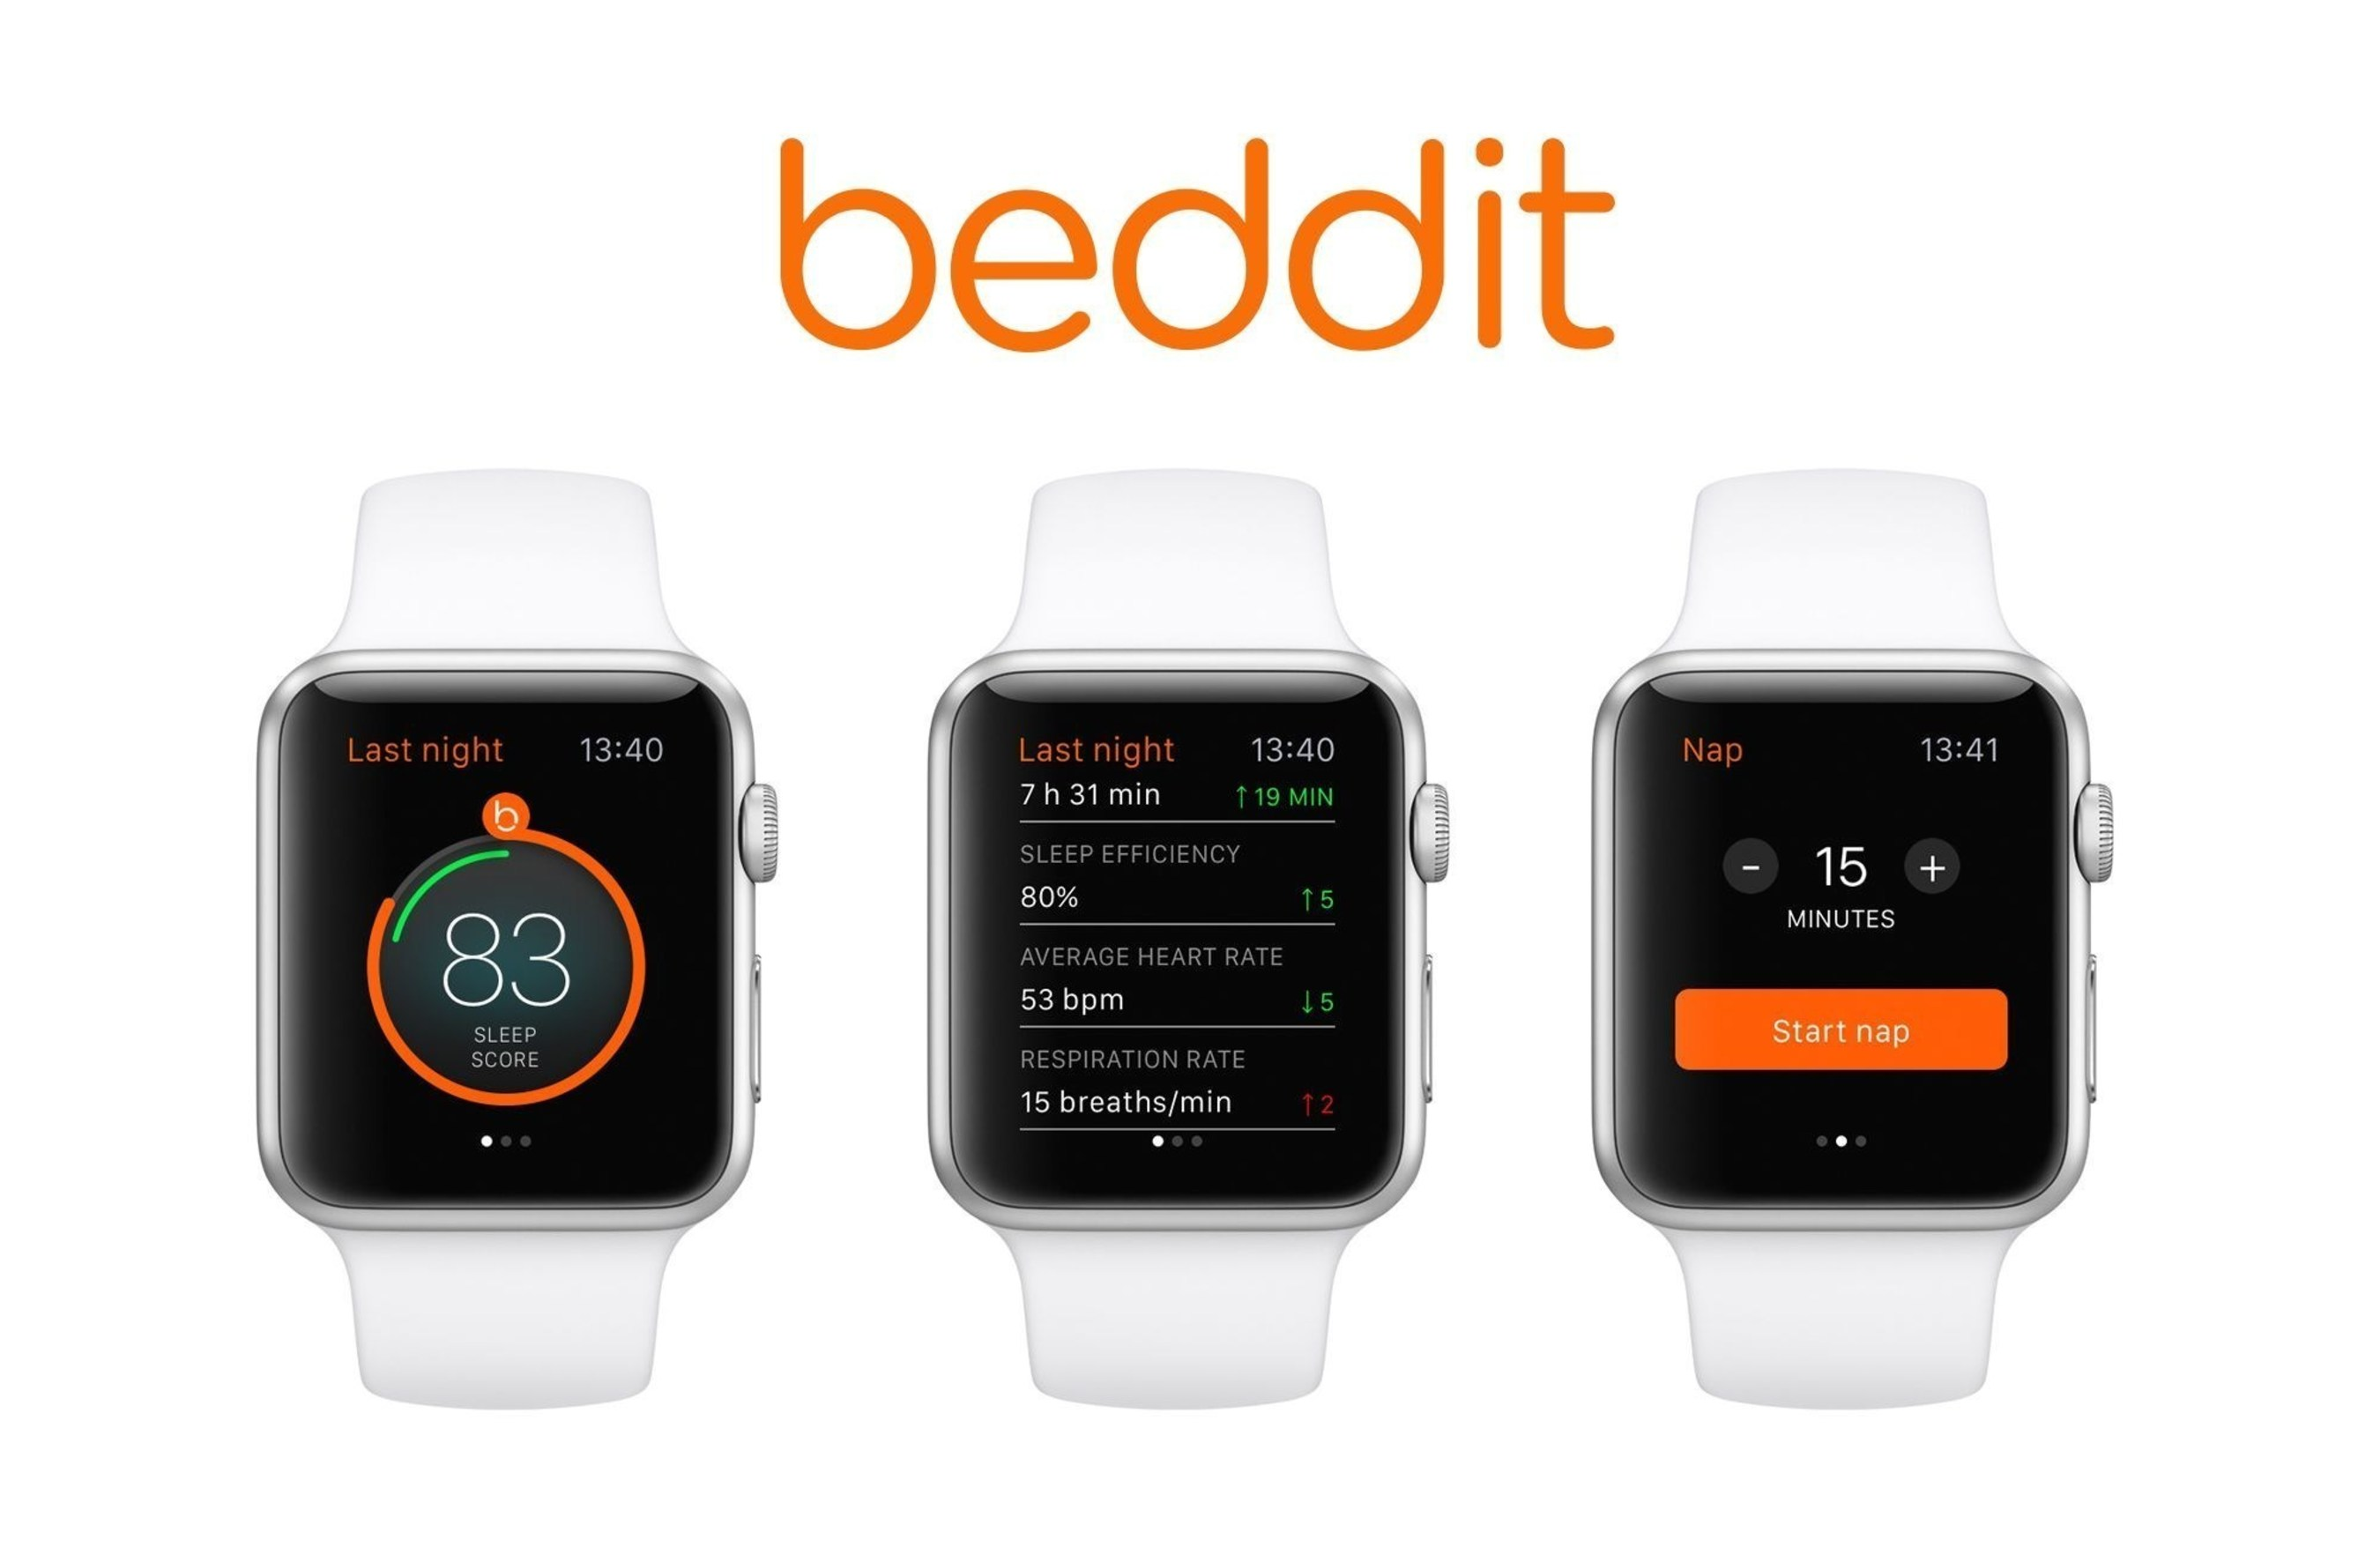 New App from Beddit Tracks Sleep Overnight and Delivers Data Seamlessly through Apple Watch and iOS Devices